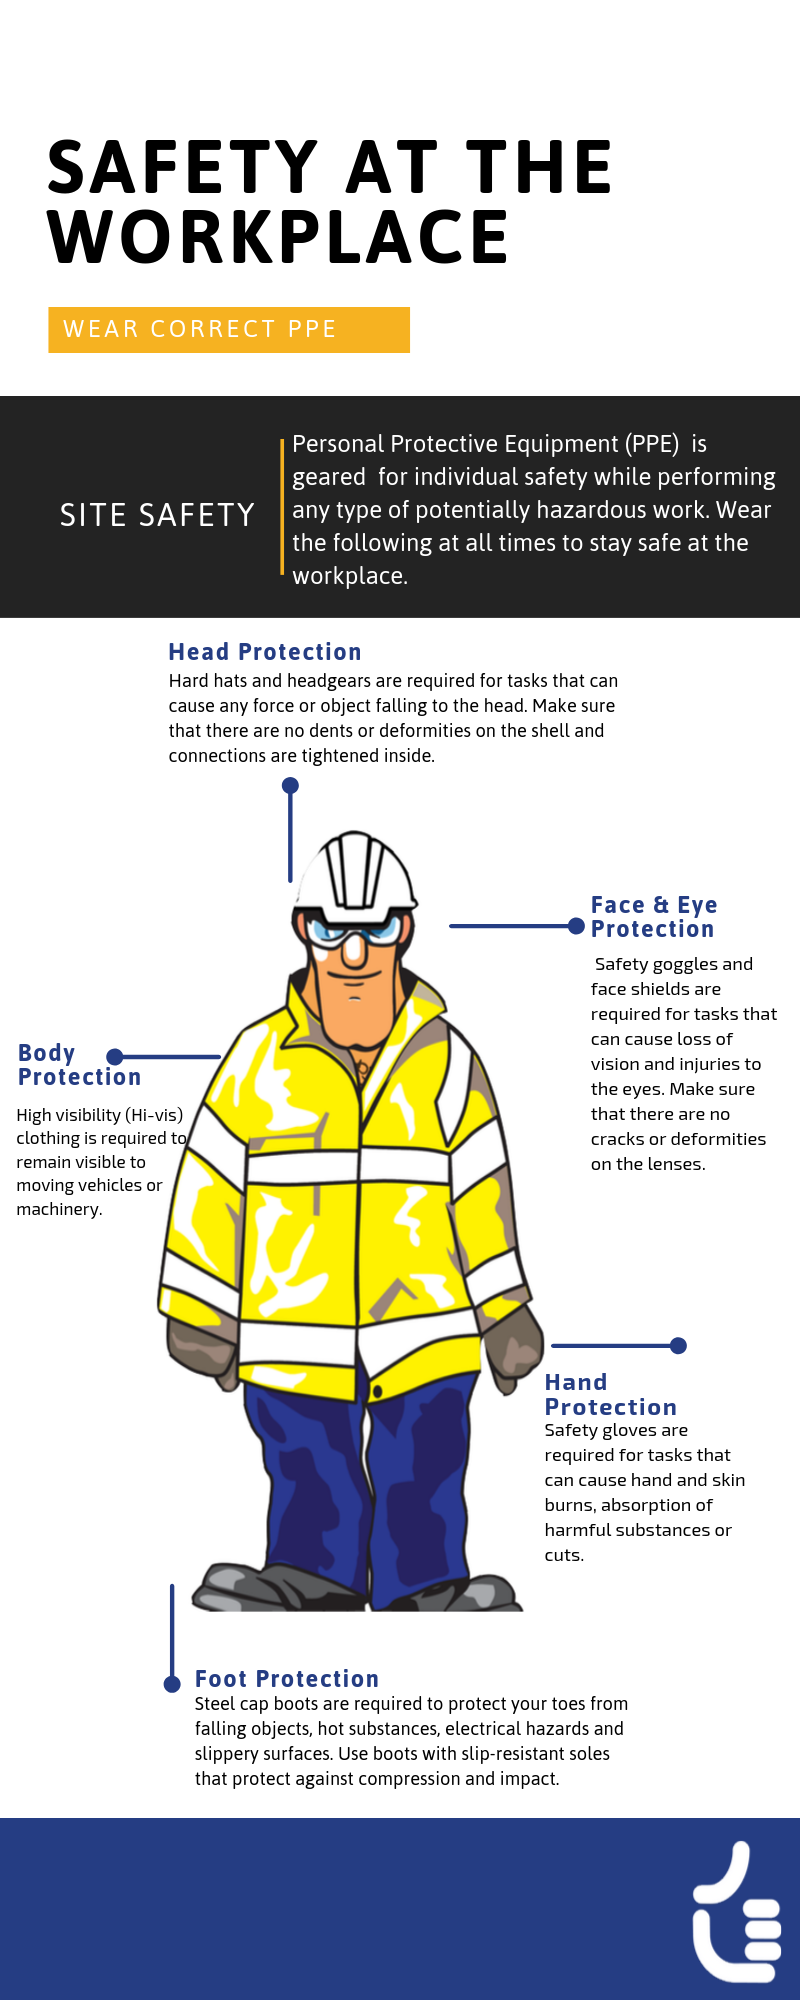 safety at the workplace